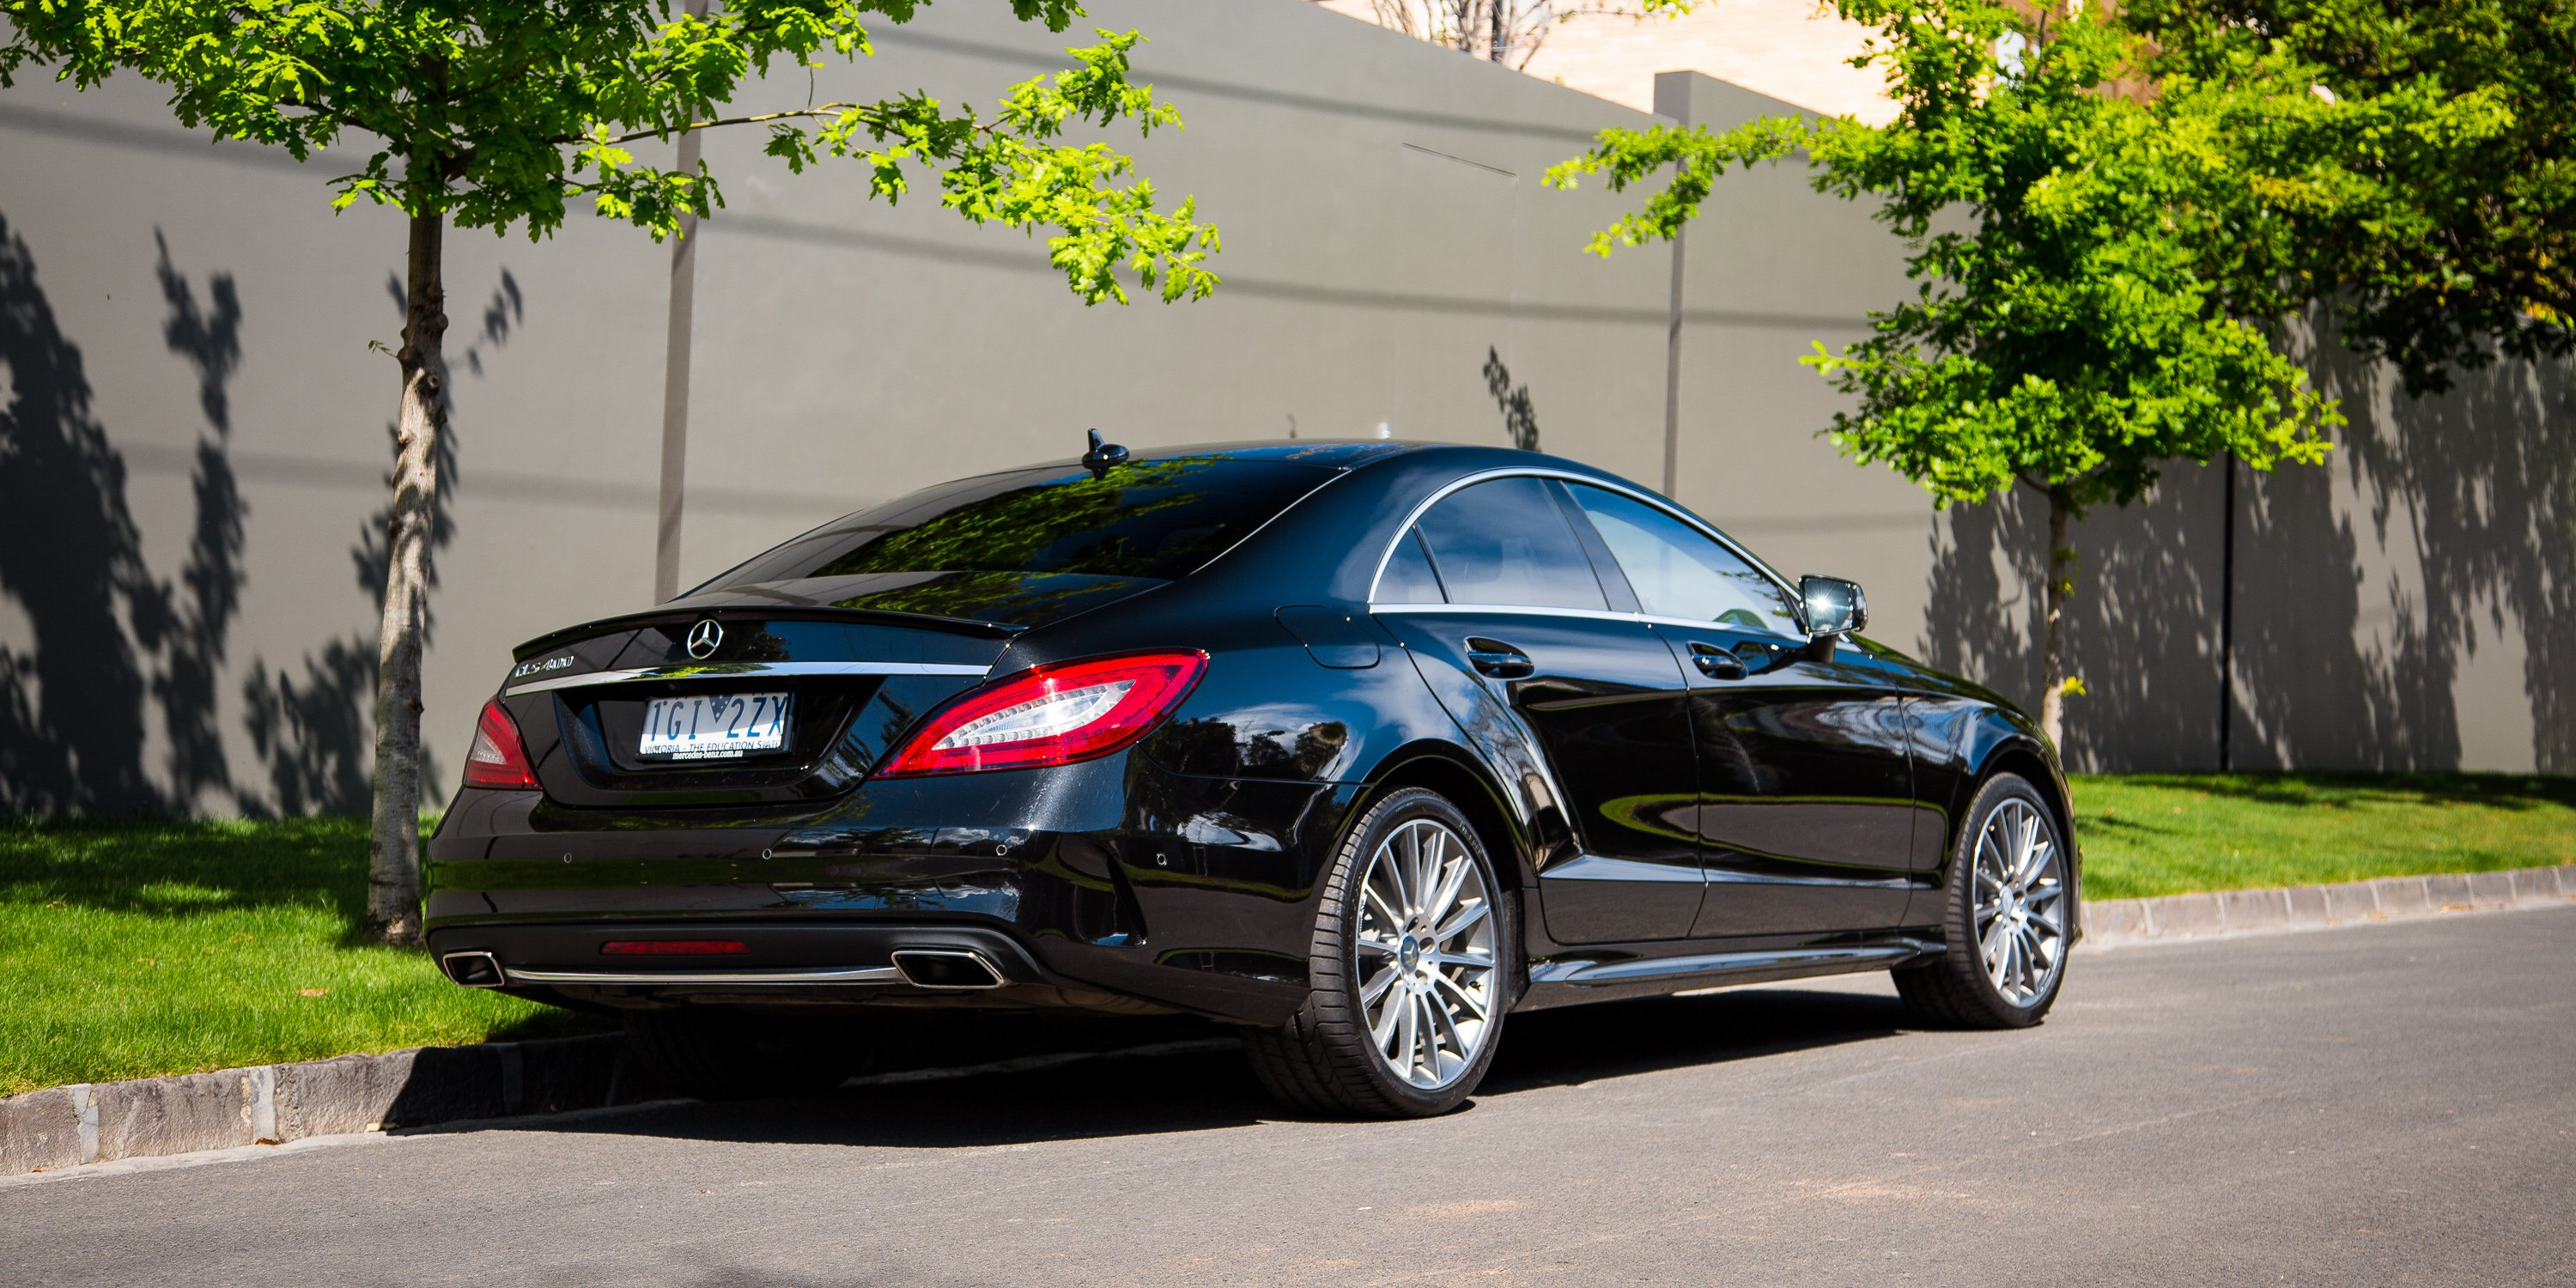 2016 mercedes benz cls400 review caradvice. Black Bedroom Furniture Sets. Home Design Ideas